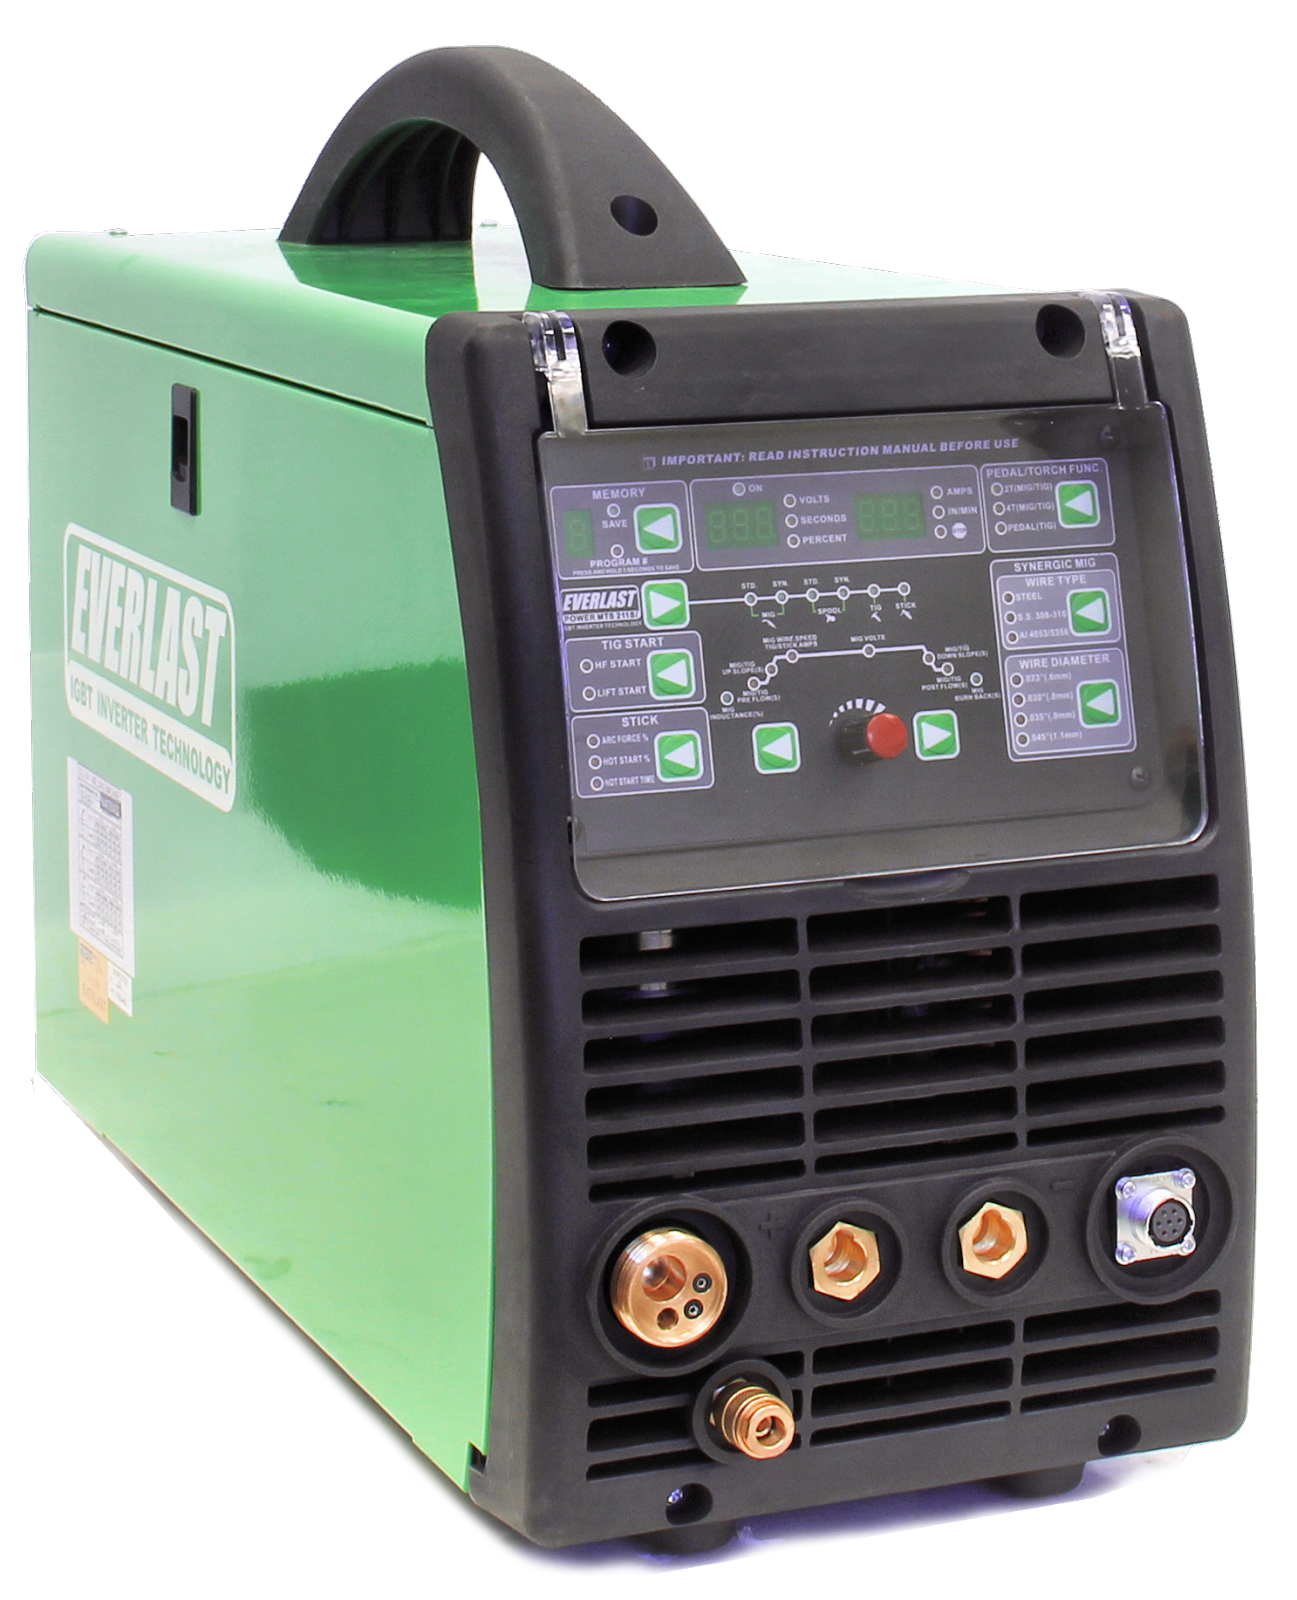 Powermts 211si With Tig Package Everlast Generators Mode Inverter Arc Welder Schematic On Igbt